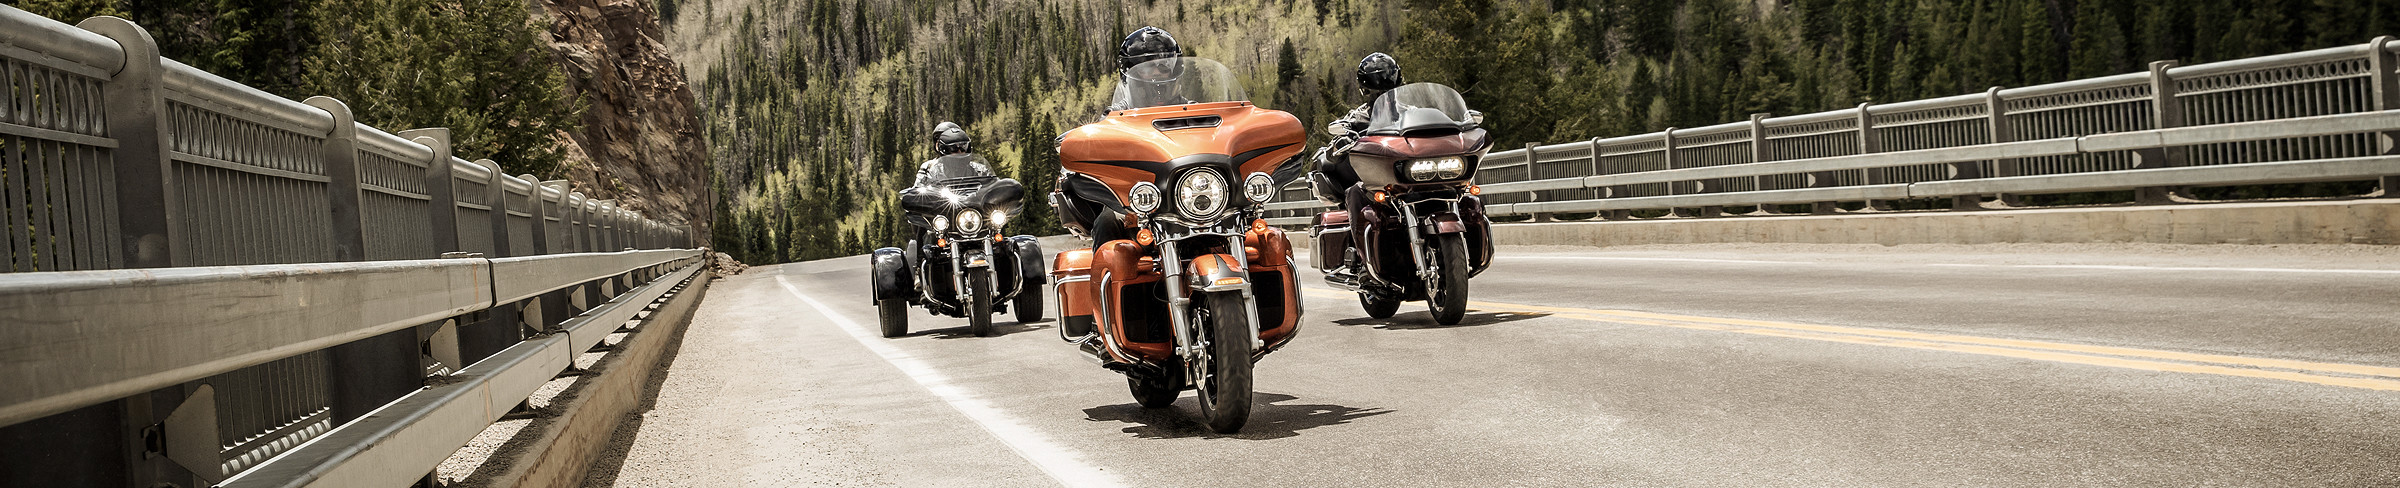 New Harley-Davidson Touring Street Glide Motorcycles for sale near Cleveland, Ohio